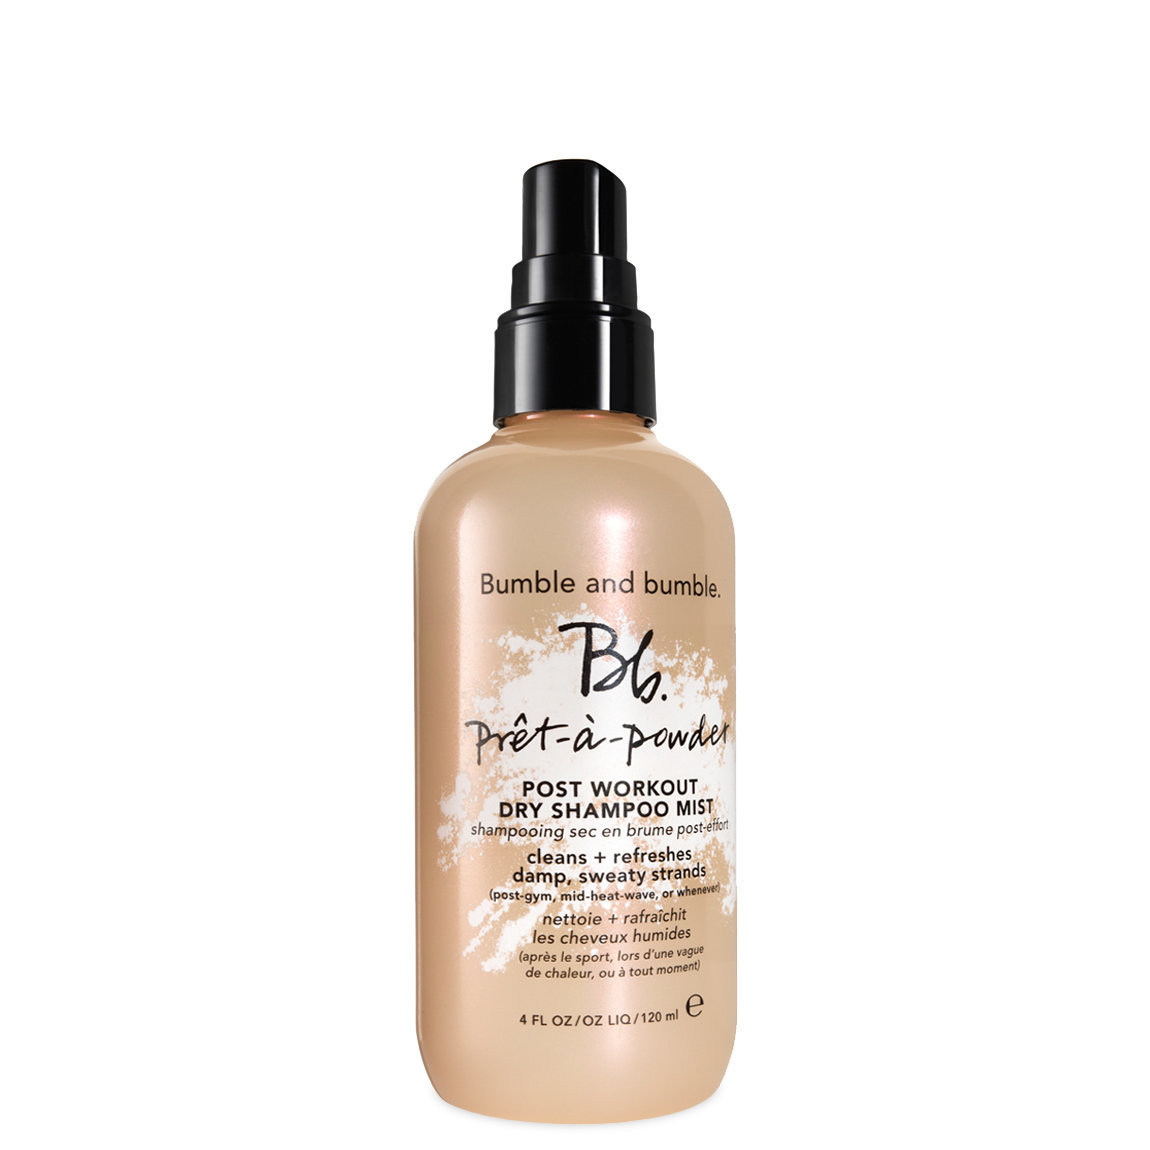 Bumble and bumble. Prêt-à-Powder Post Workout Dry Shampoo Mist 4 oz alternative view 1 - product swatch.